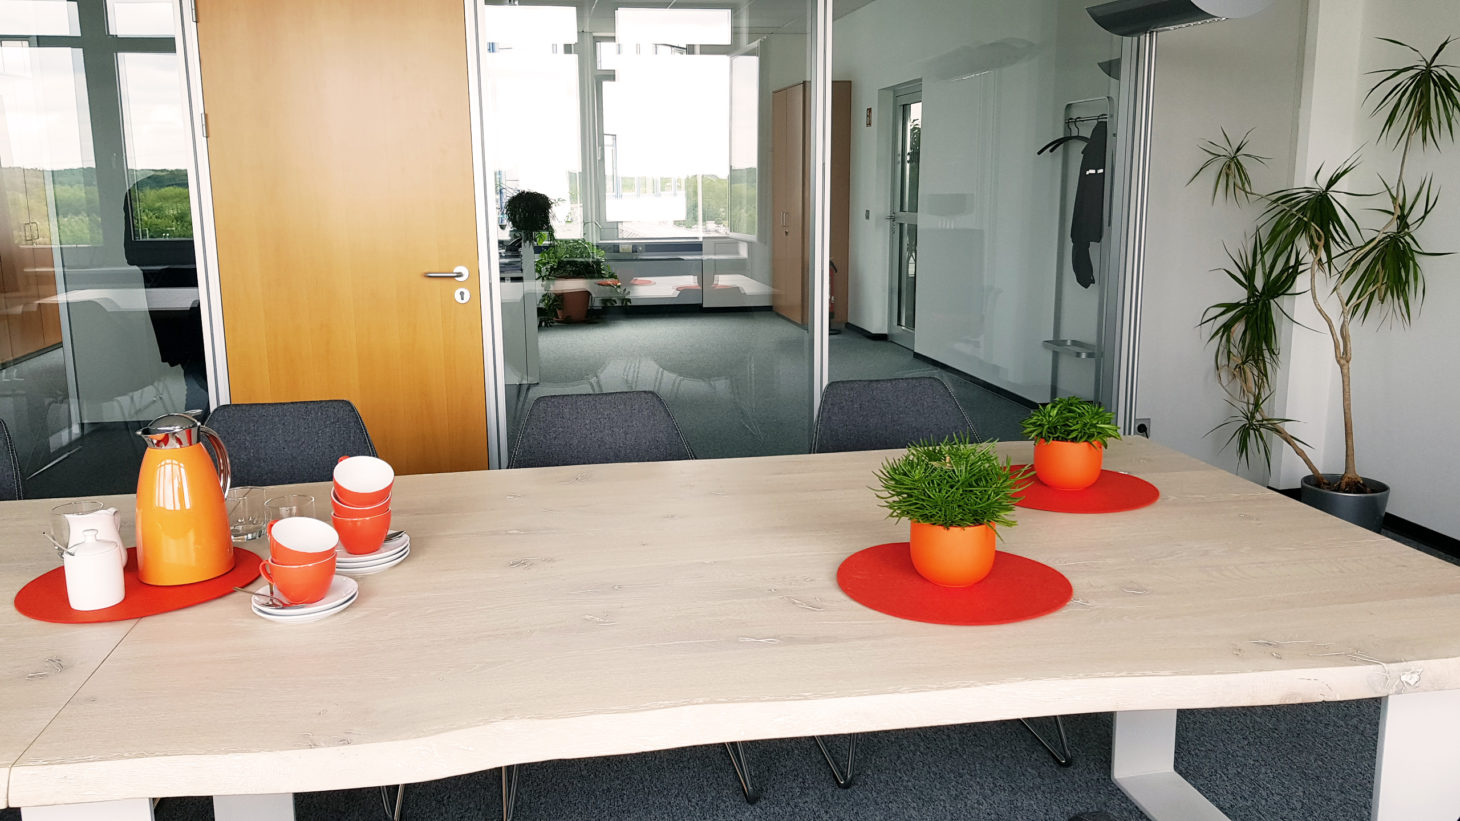 Conference room, valantic ERP Consulting, Langenfeld